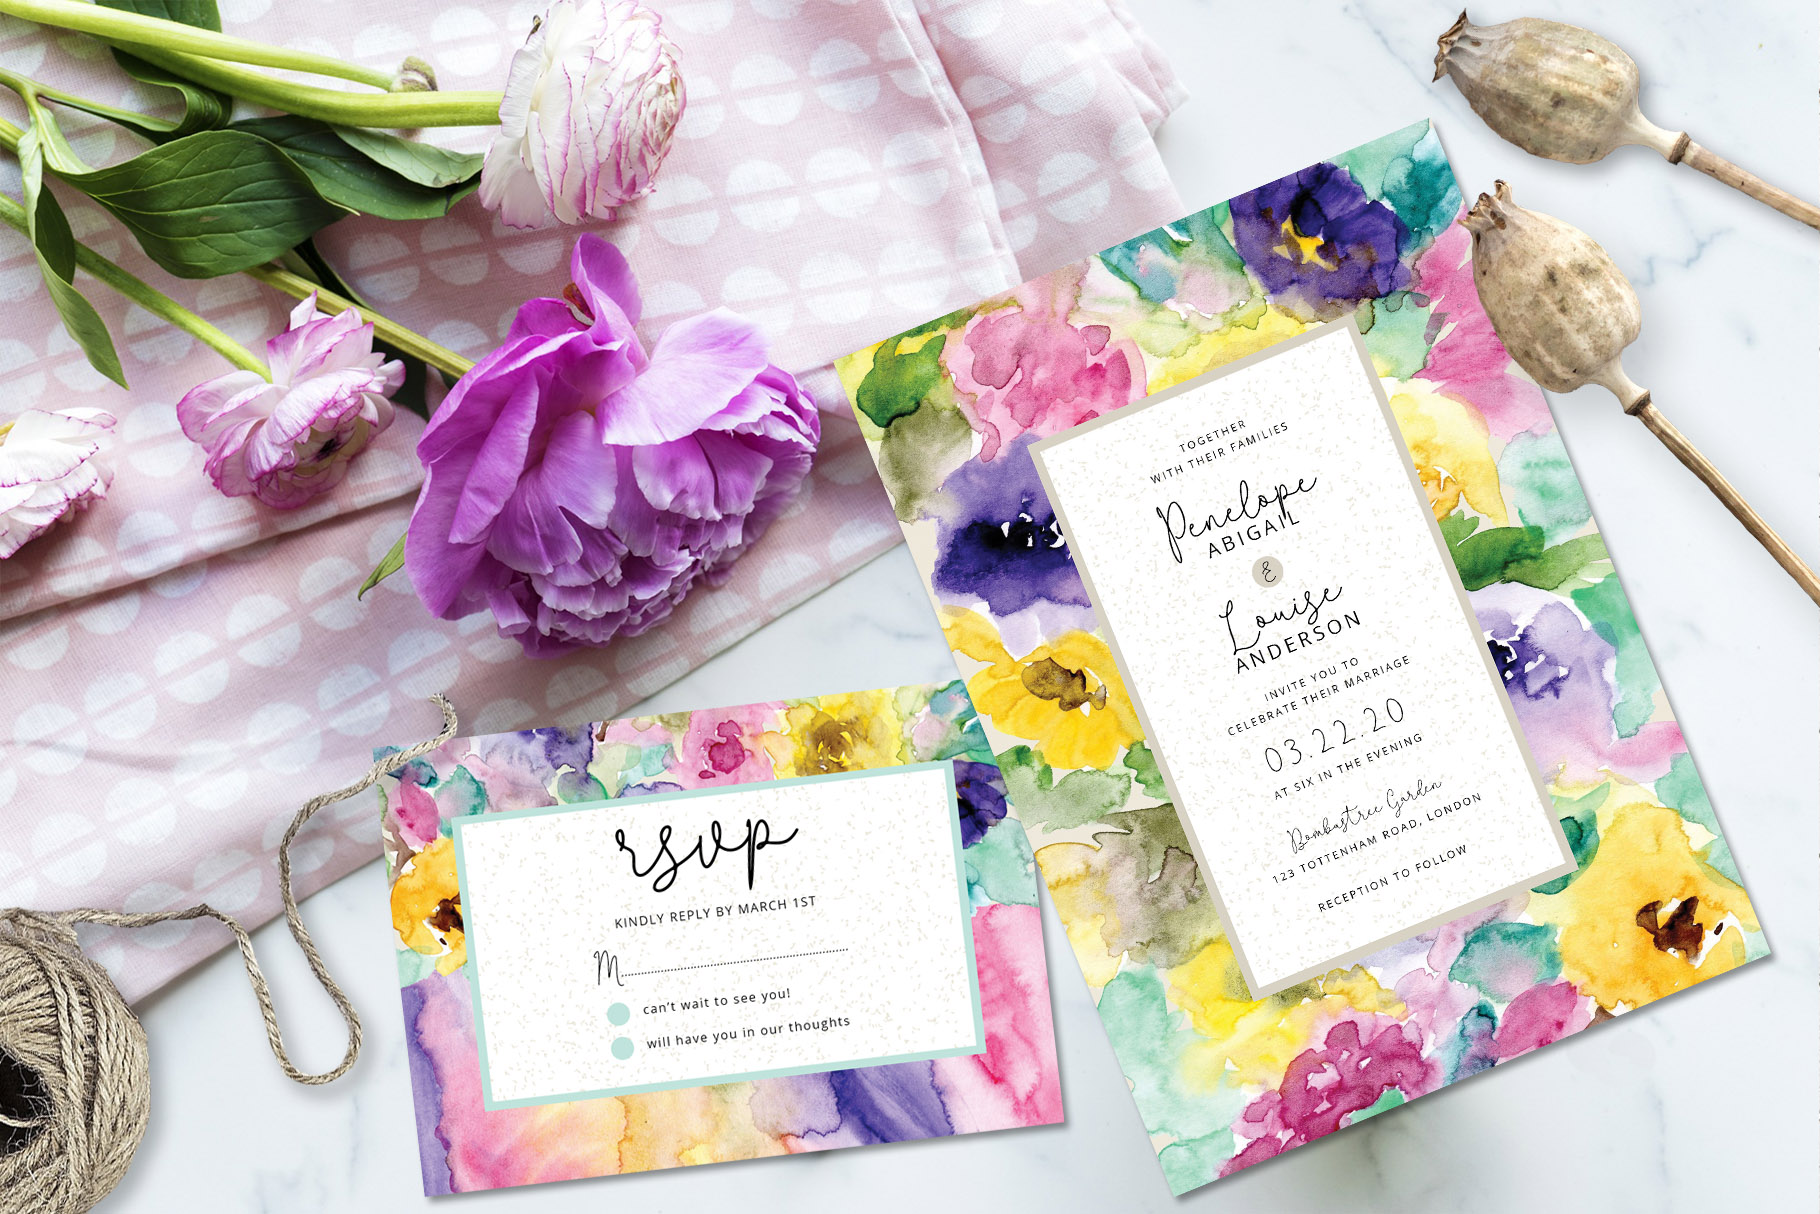 Abstract Floral Wedding Invitation example image 2